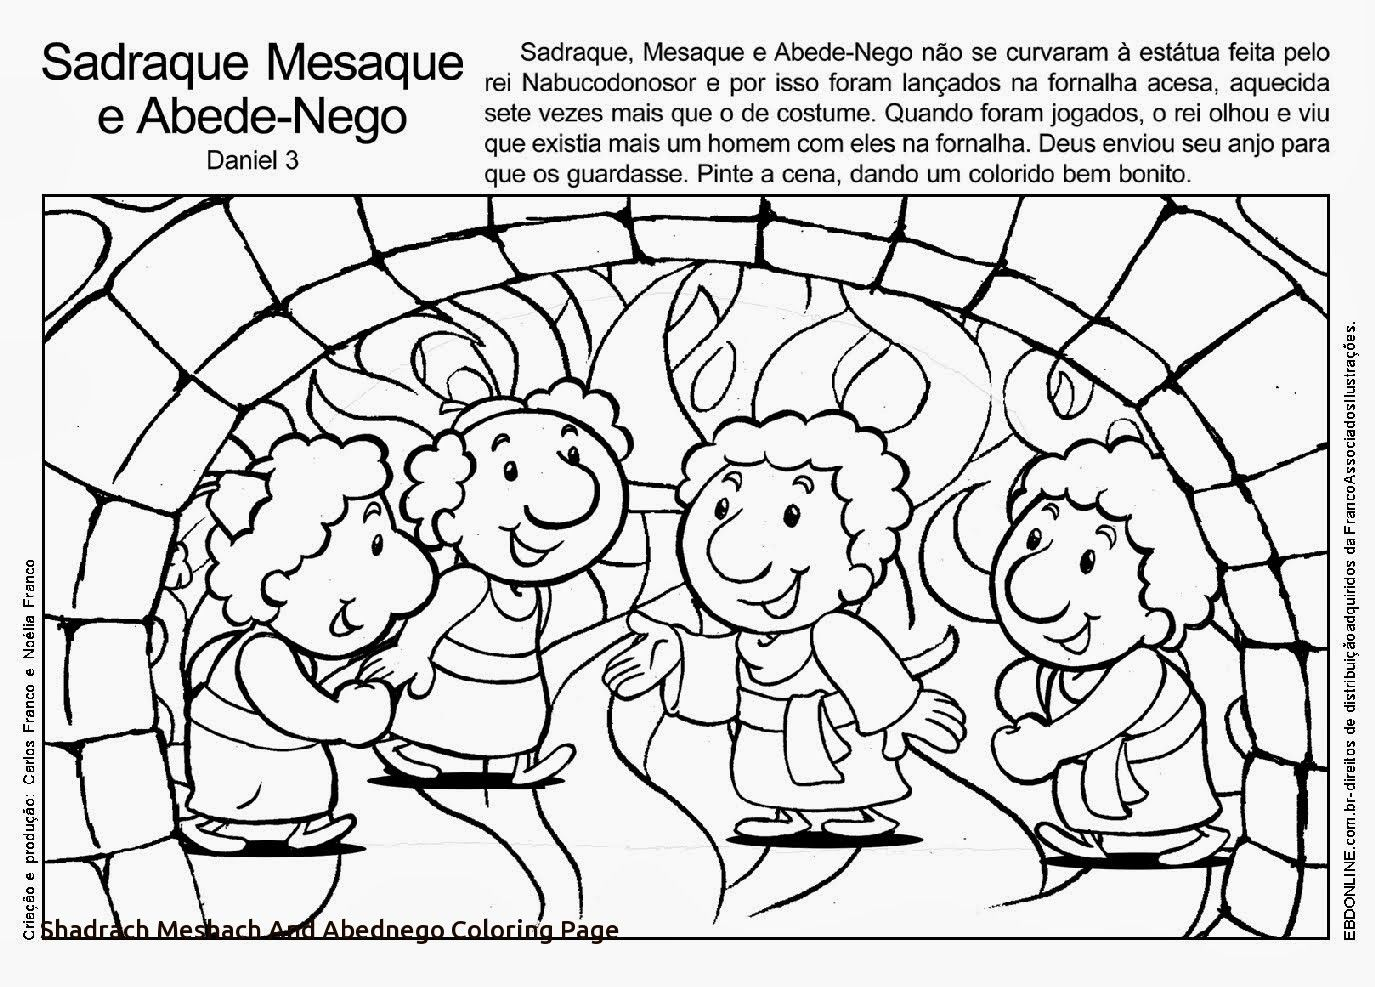 Last Chance Fiery Furnace Coloring Page Security 6155 1102 1426